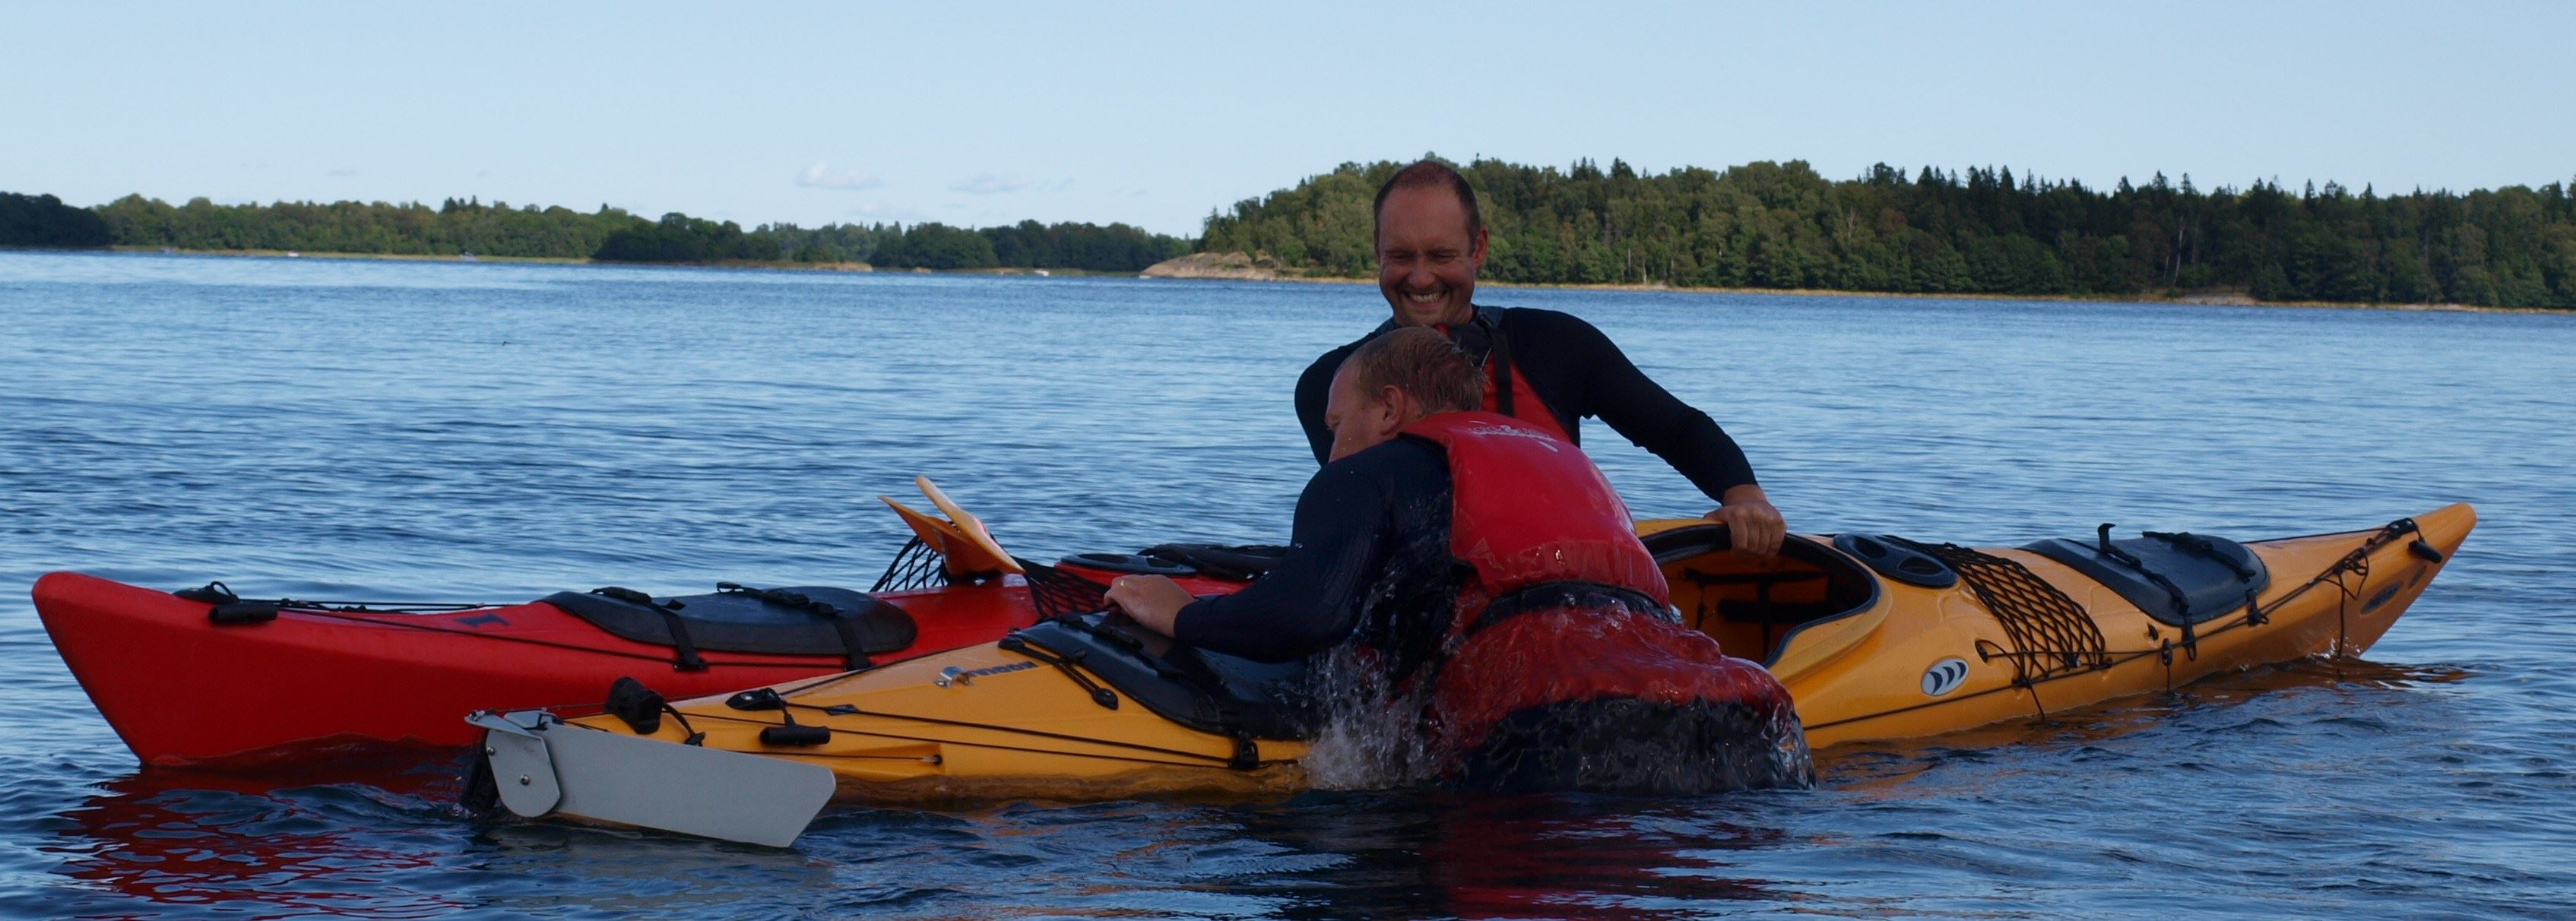 Seakayaking- continuation course in Roslagens archipelago with Kajak och Uteliv